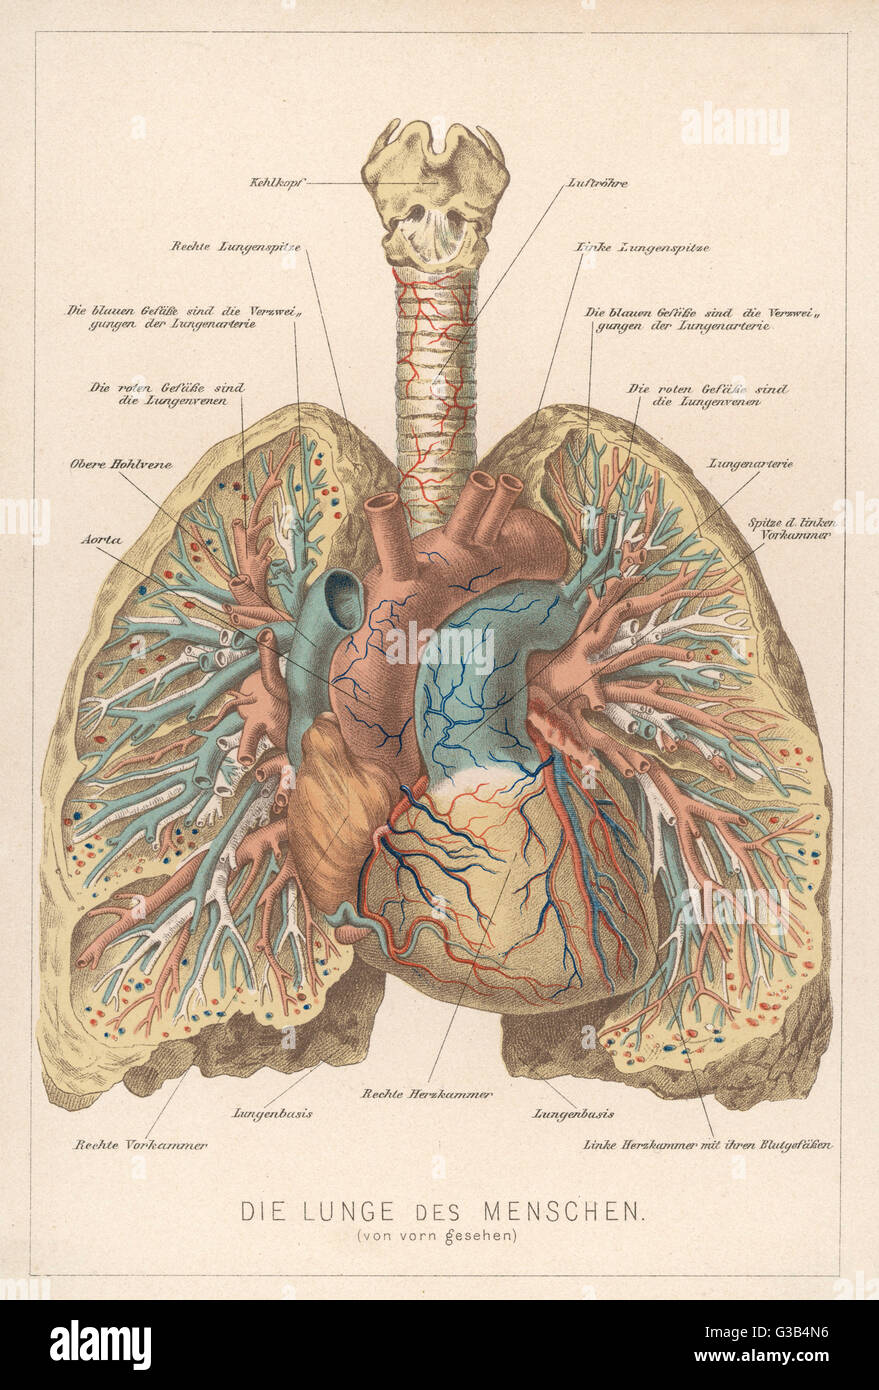 Detailed diagram of the lungs - Stock Image